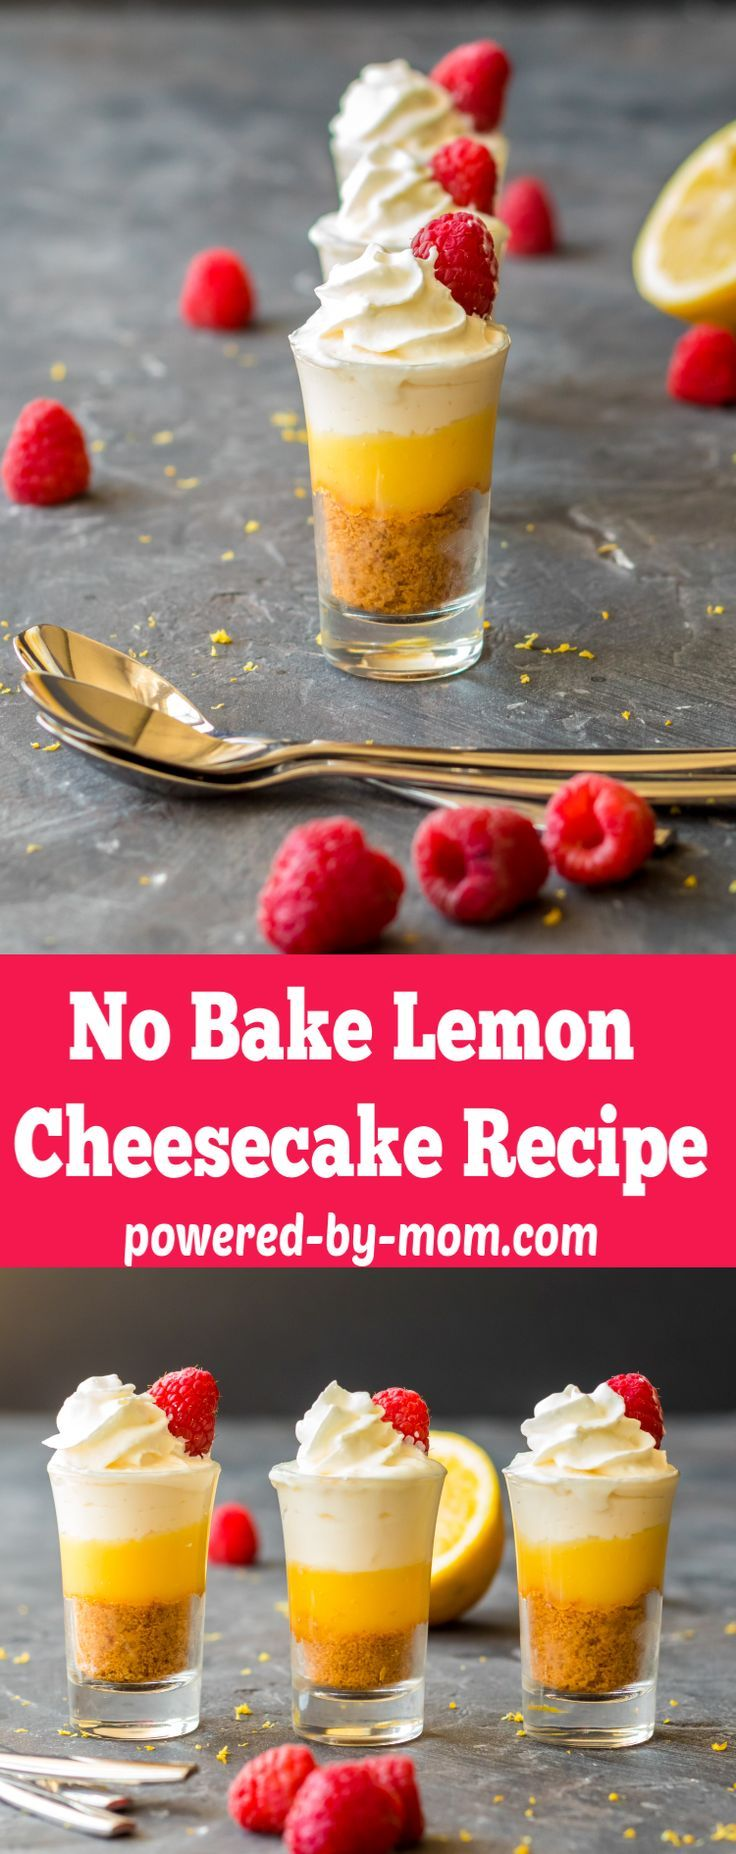 This Mini No Bake Lemon Cheesecake recipe is so easy to make, has just the right amount of tartness and is the perfect treat for spring and summer.